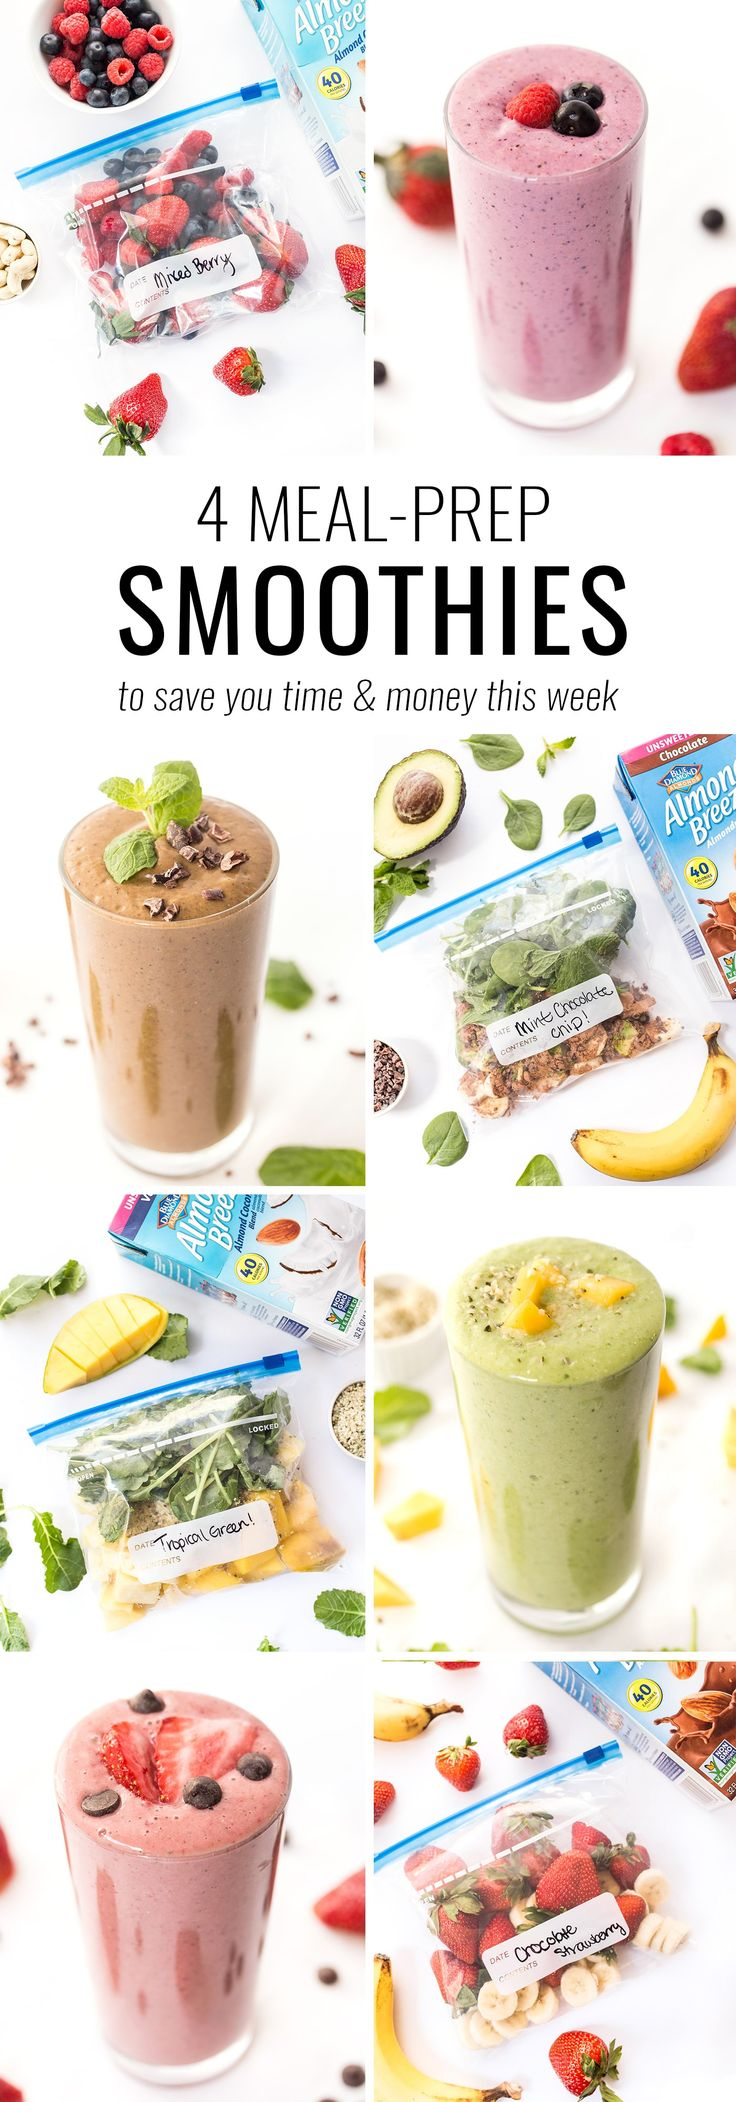 Meal prep like a boss with these 4 EASY meal-prep smoothie recipes! Just toss the ingredients in a bag, freeze and blend when ready to eat! CC: @almondbreeze #partner